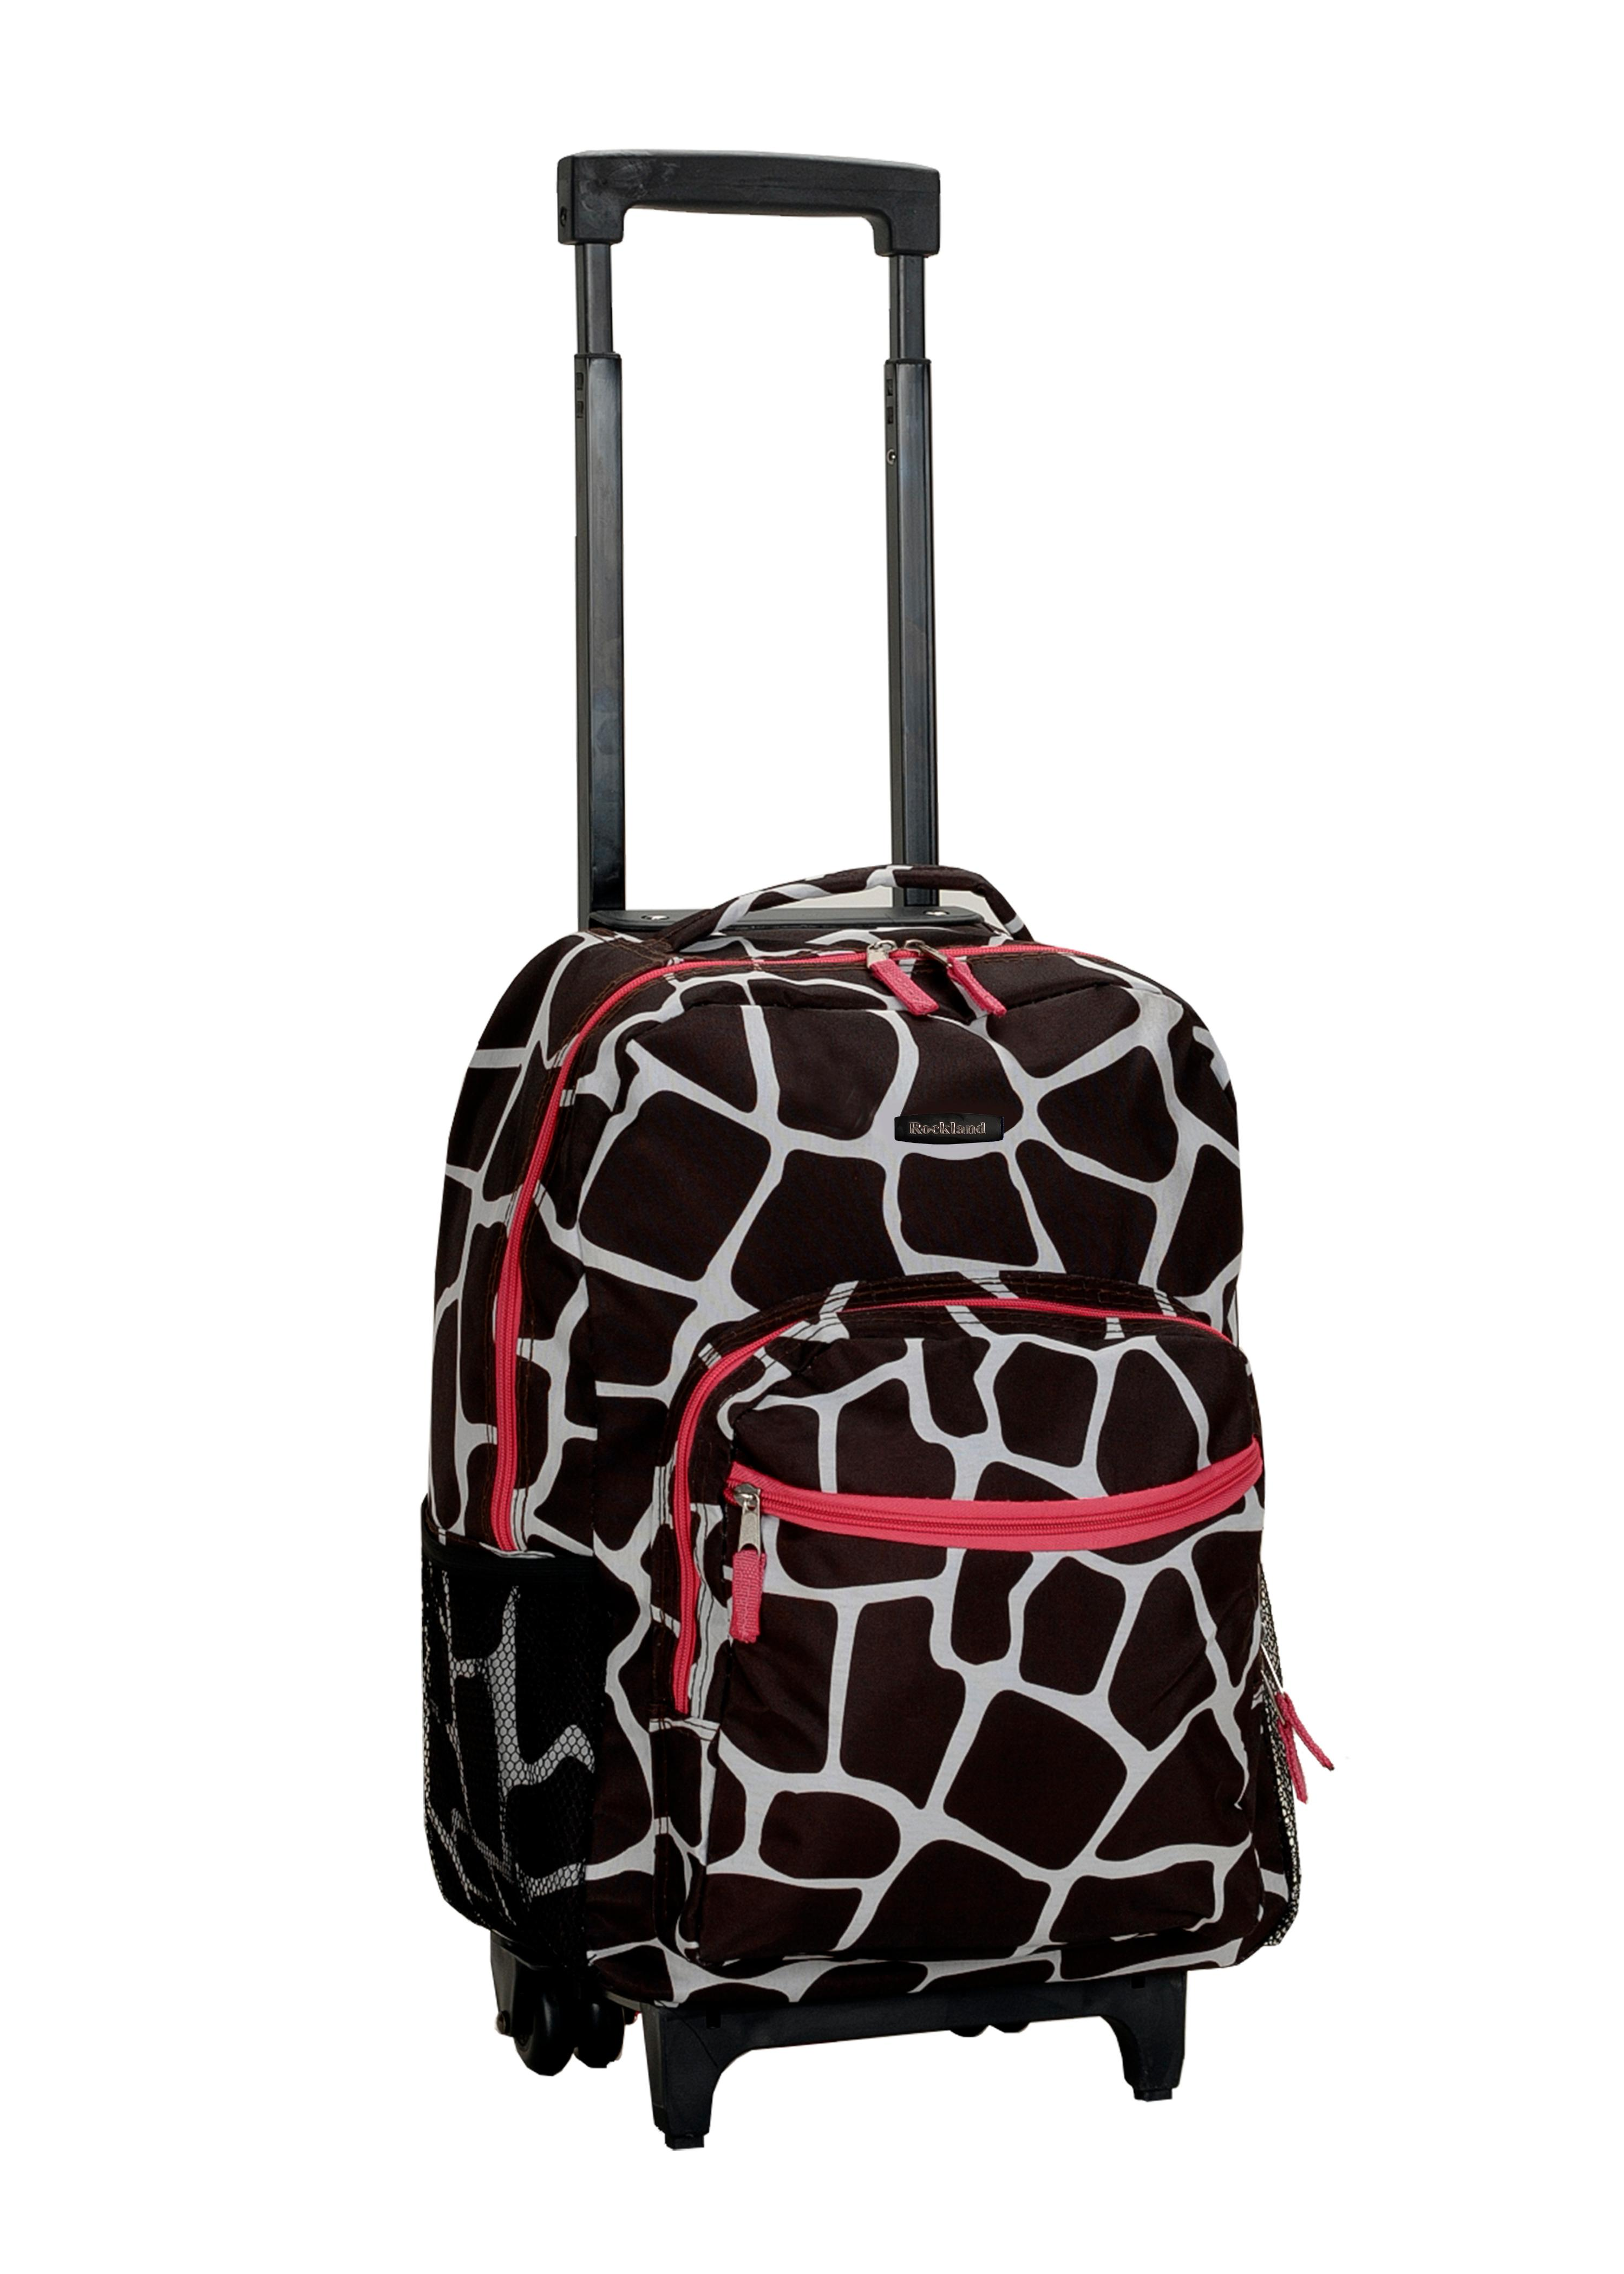 Buy Rolling Make Up Artist Bag With Seat: Buy Rockland Luggage 17 Inch Rolling Backpack Pink Dot One